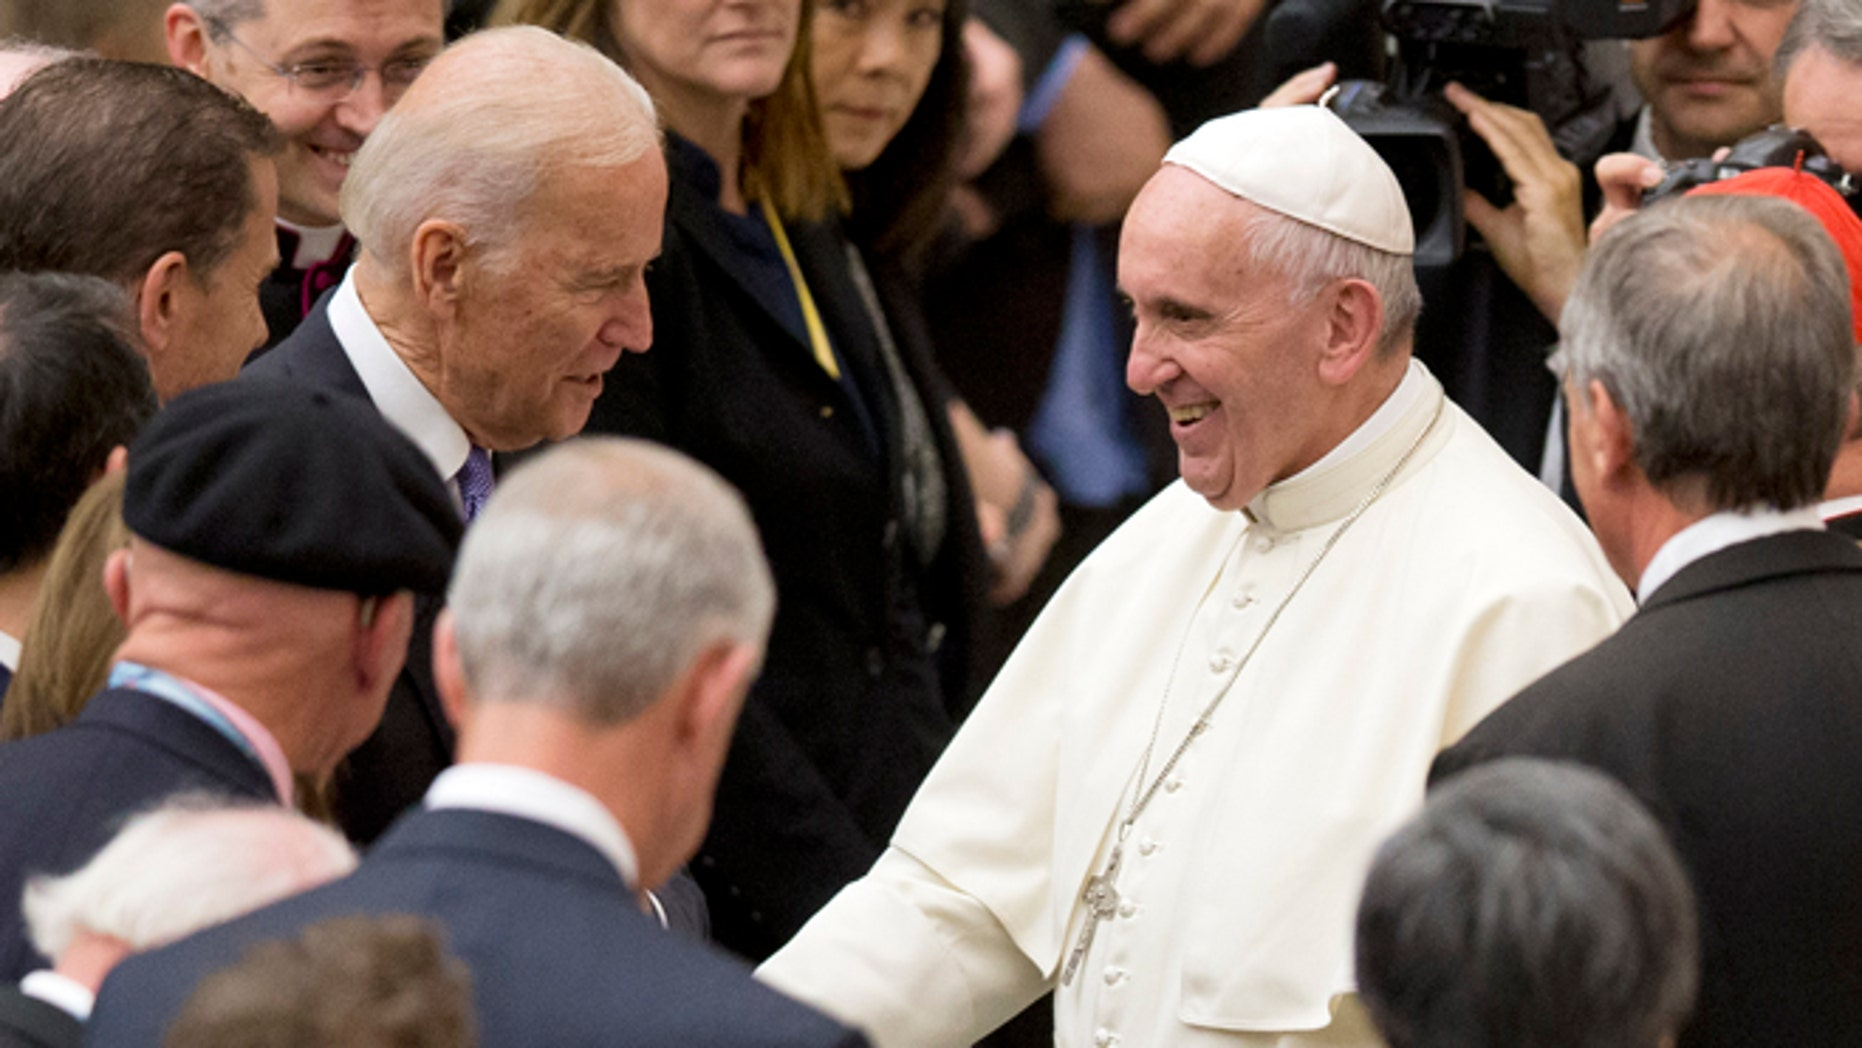 Pope Francis shakes hands with US vice president Joe Biden as he takes part at a congress on the progress of regenerative medicine and its cultural impact, being held in the Pope Paul VI hall at the Vatican,  Friday, April 29, 2016. (AP Photo/Andrew Medichini)